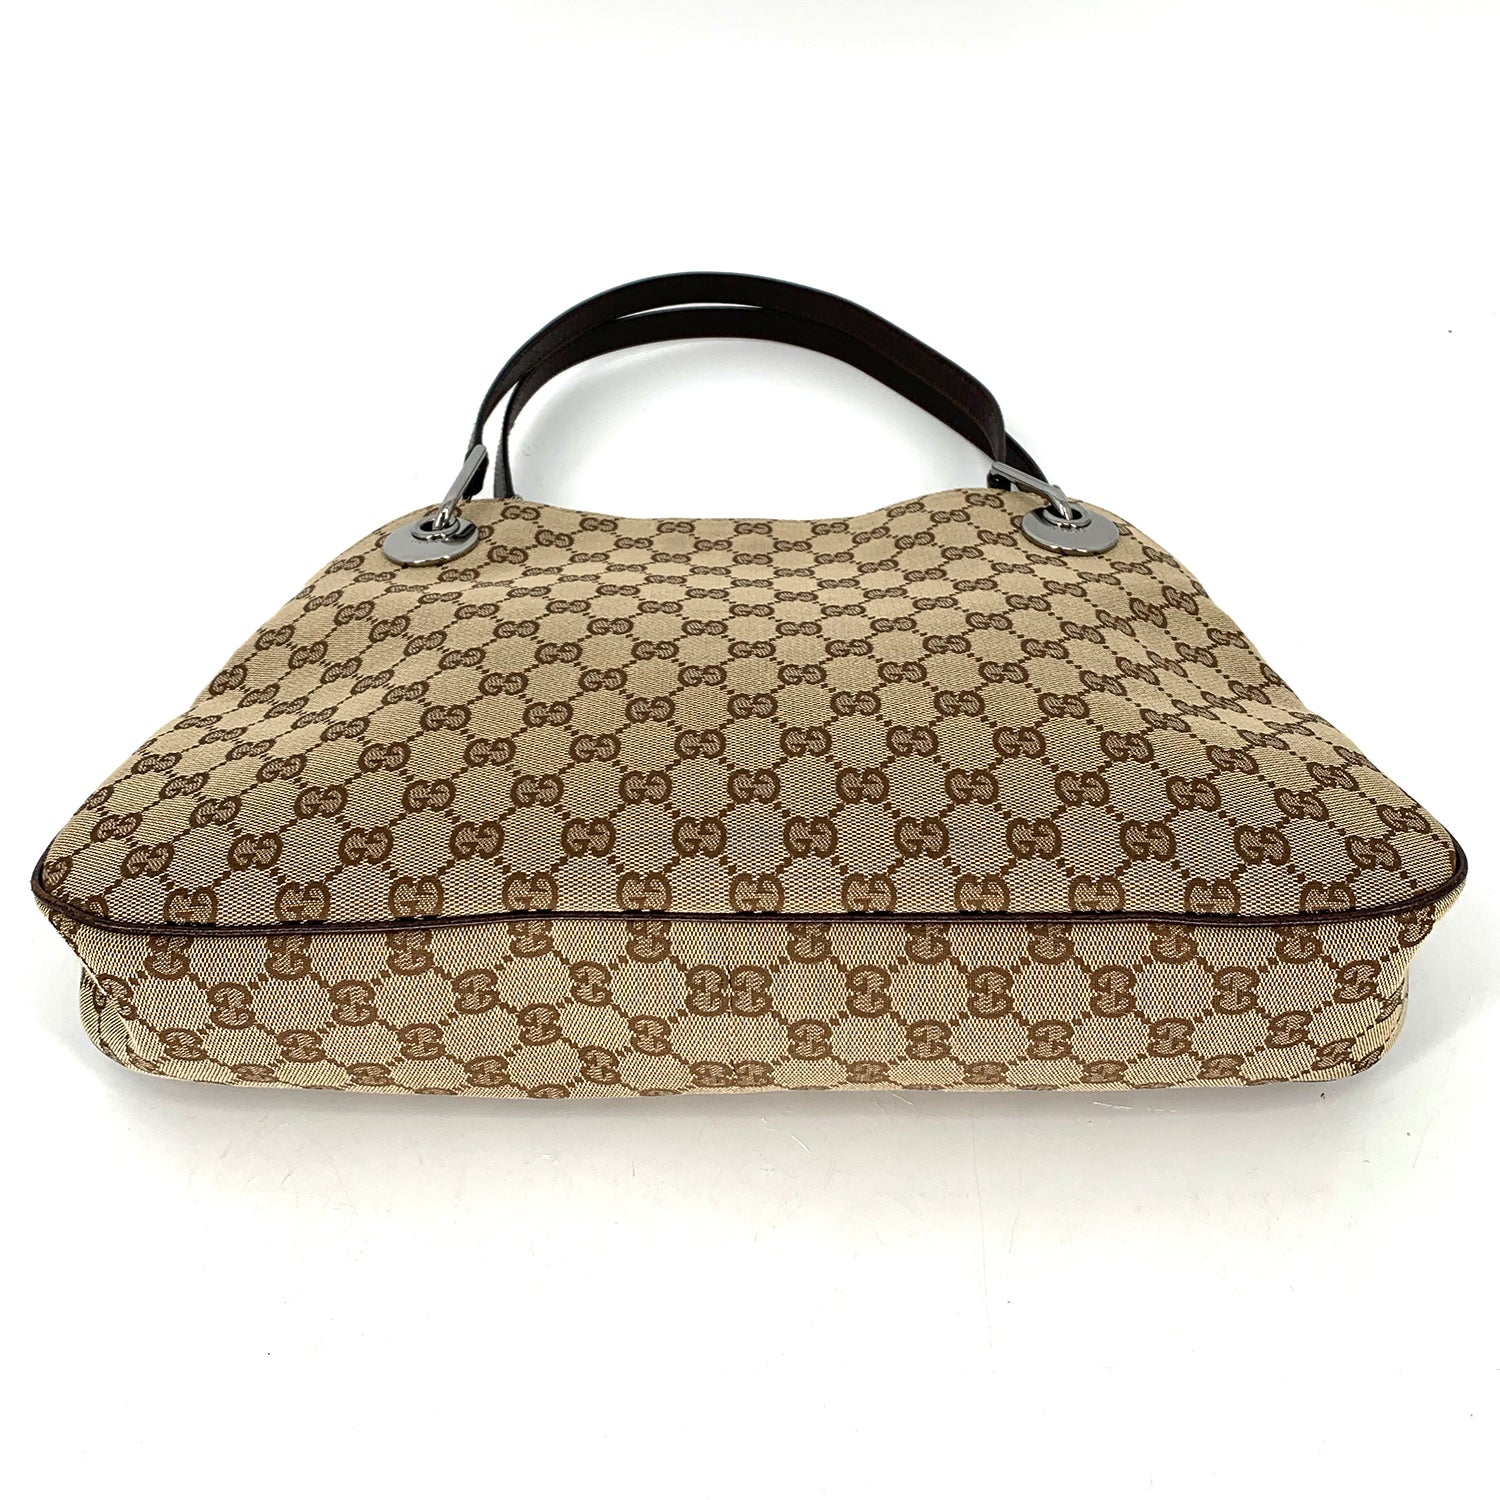 Gucci Monogram Eclipse Shoulder Bag